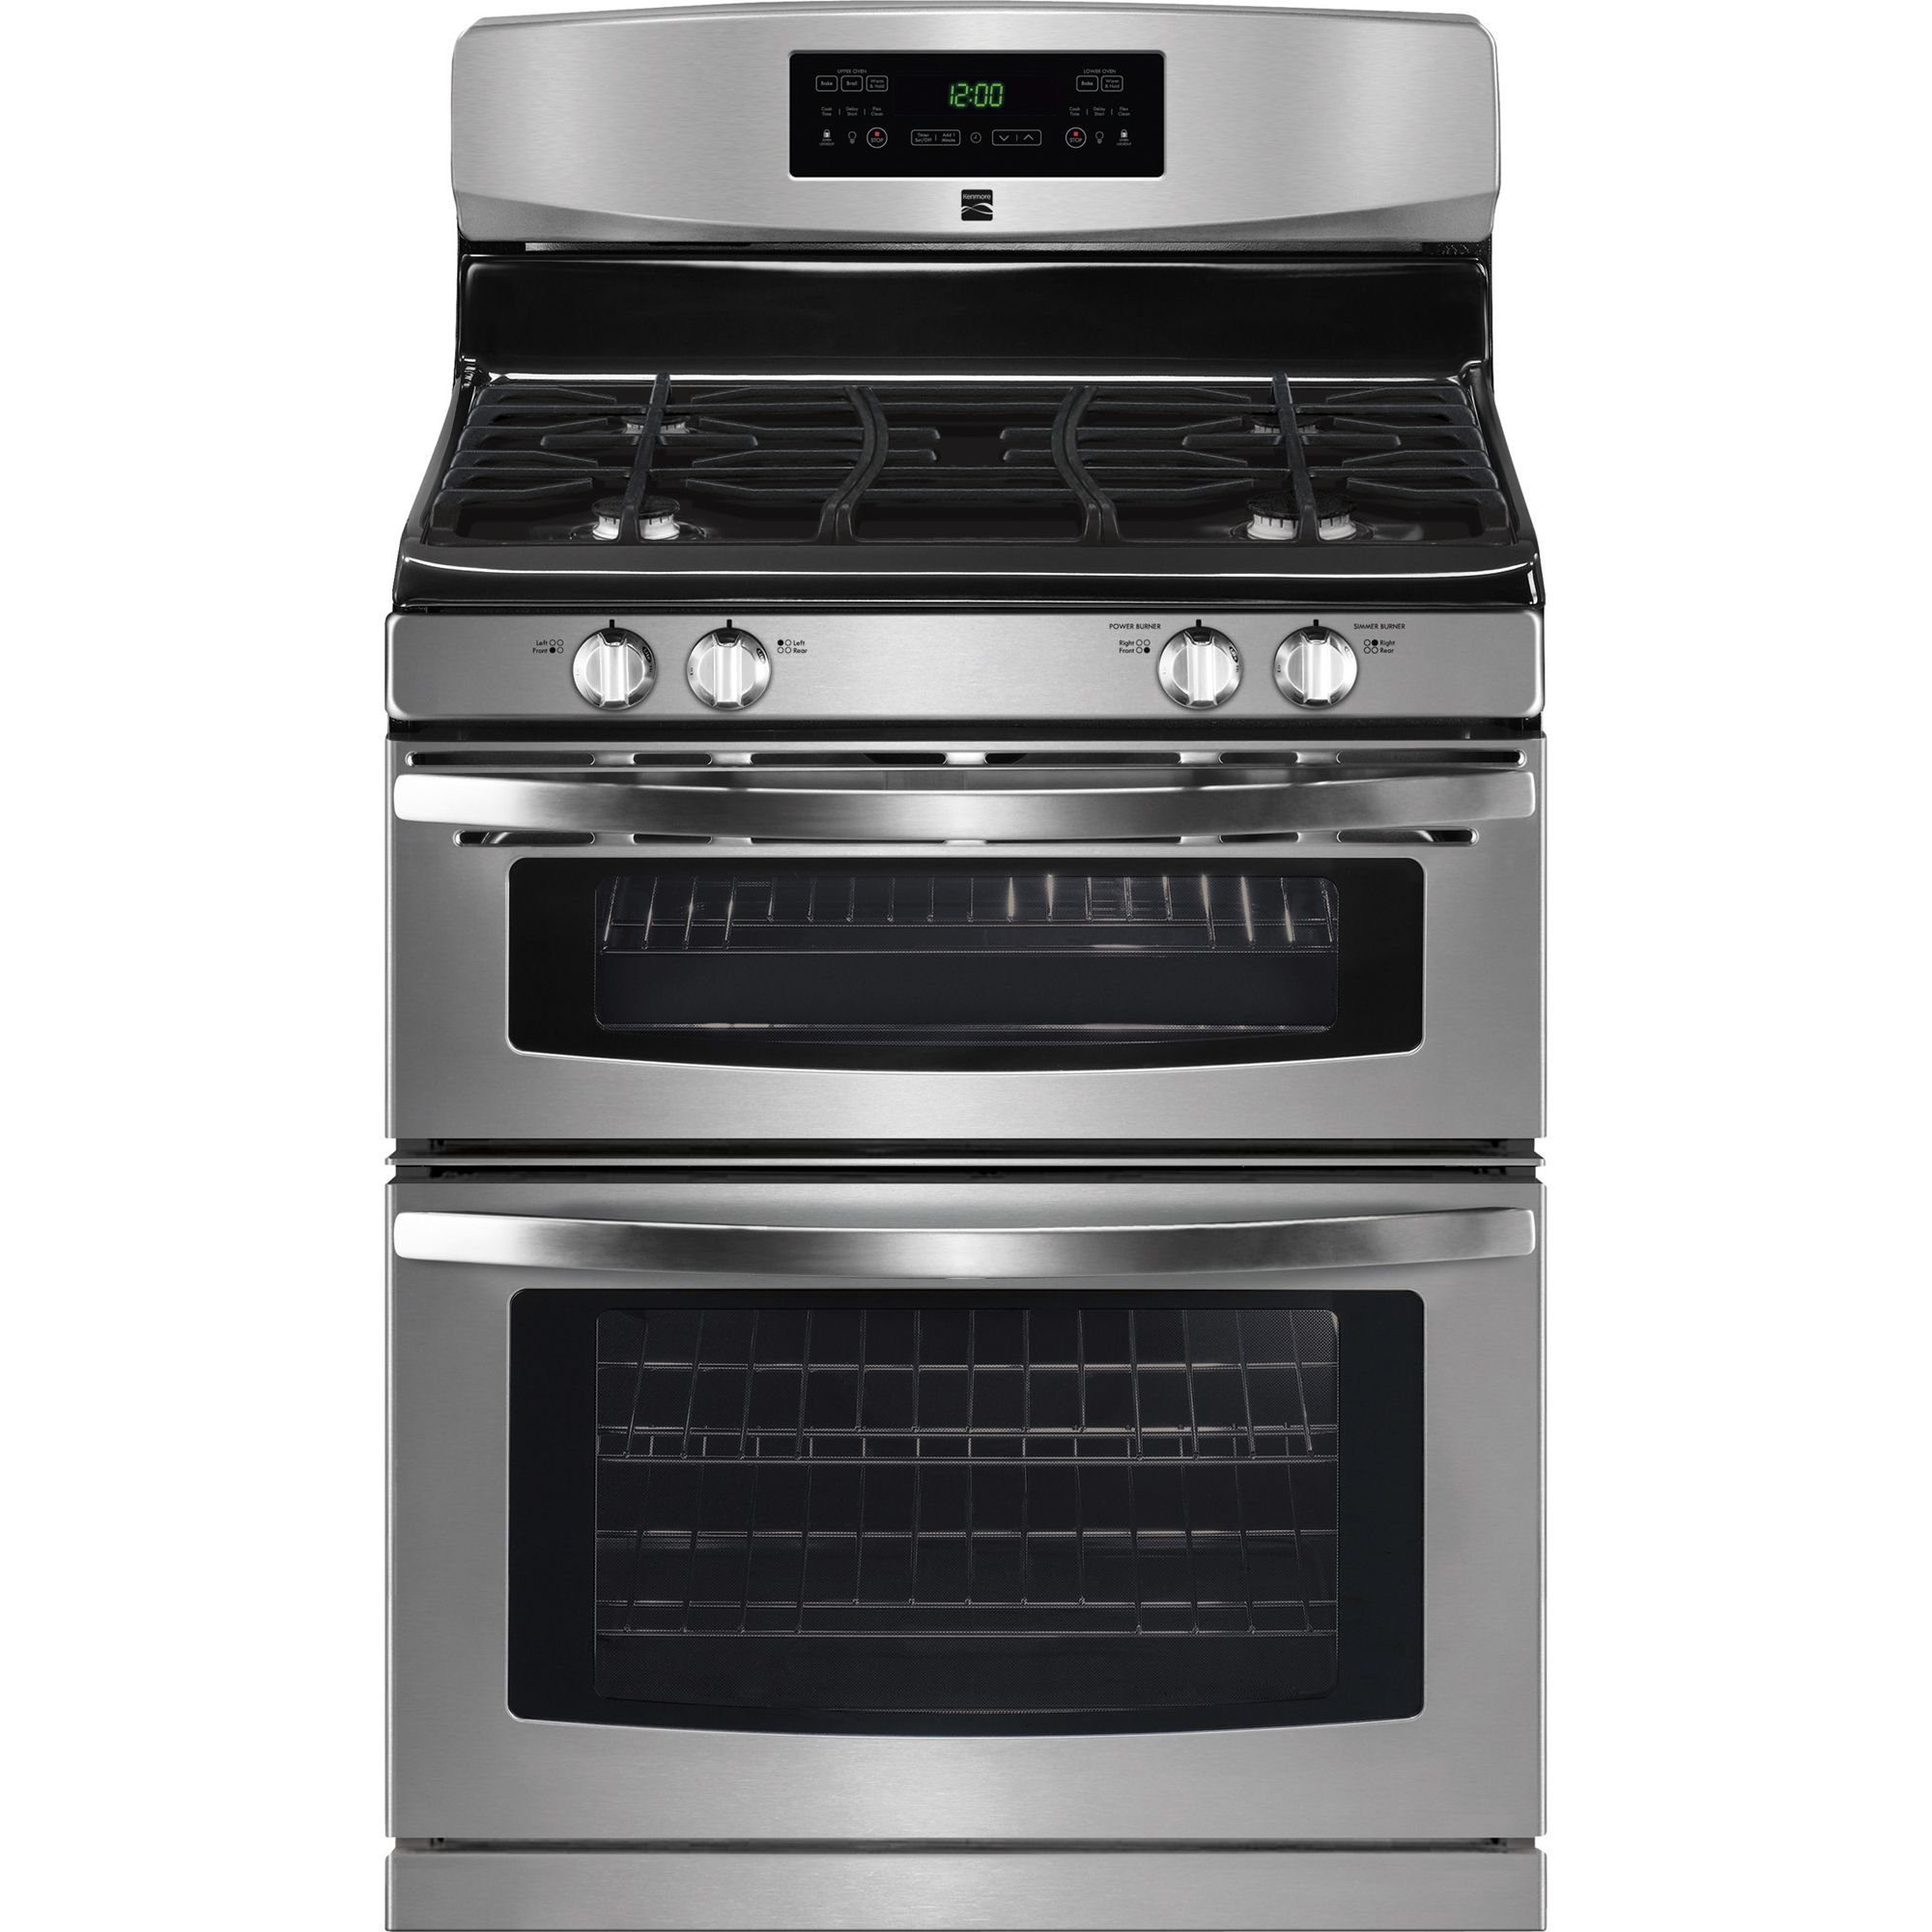 Kitchenaid Dual Oven Gas Range